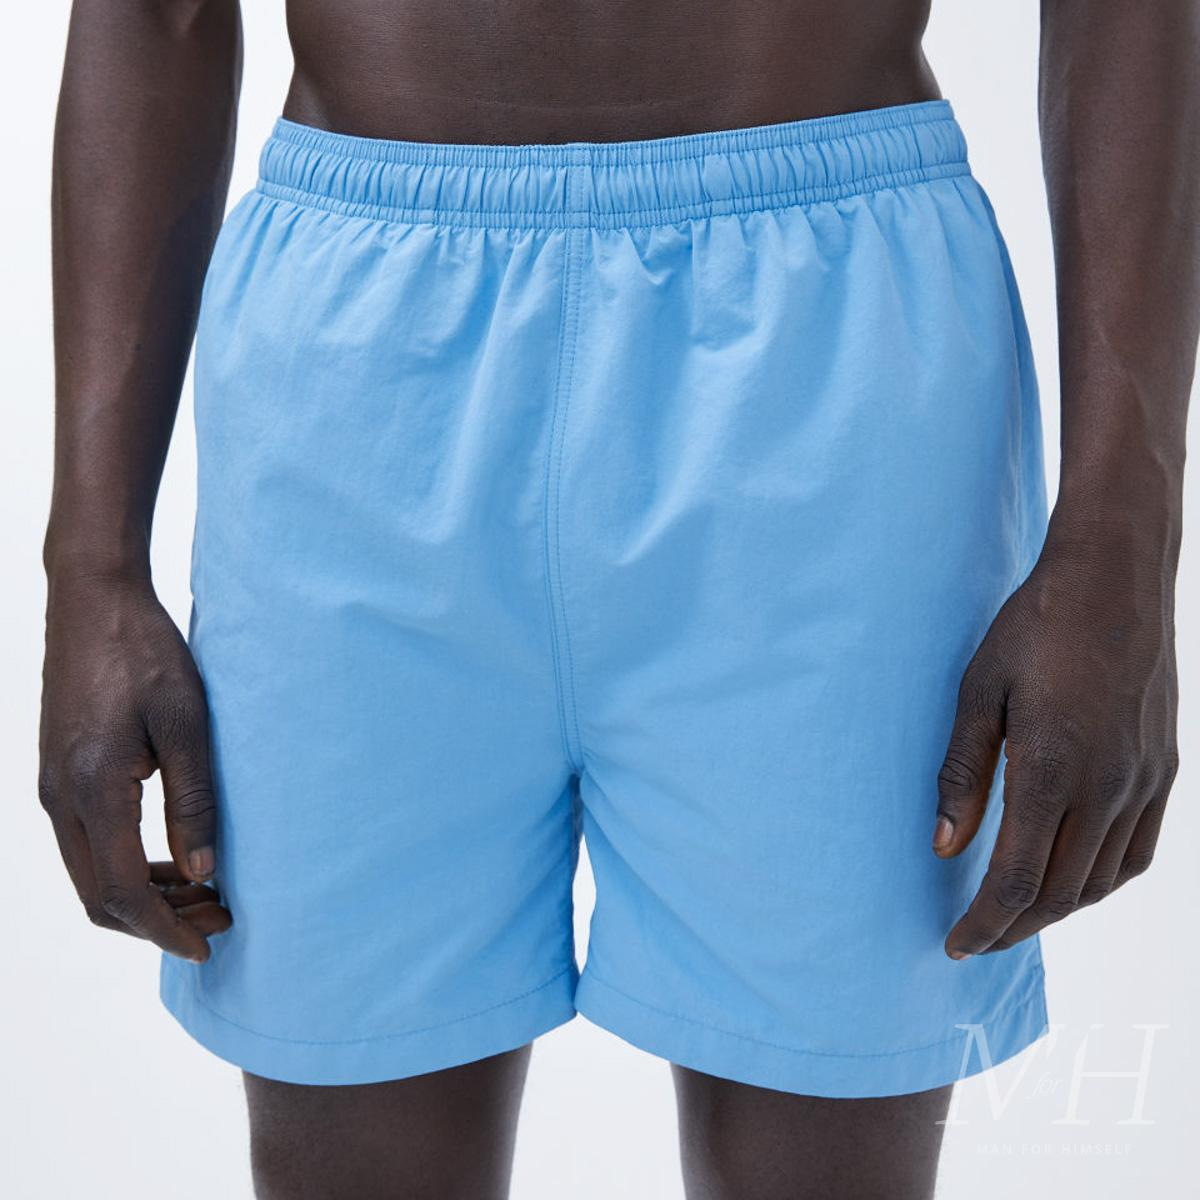 arket-swimshorts-payday-pickups-man-for-himself